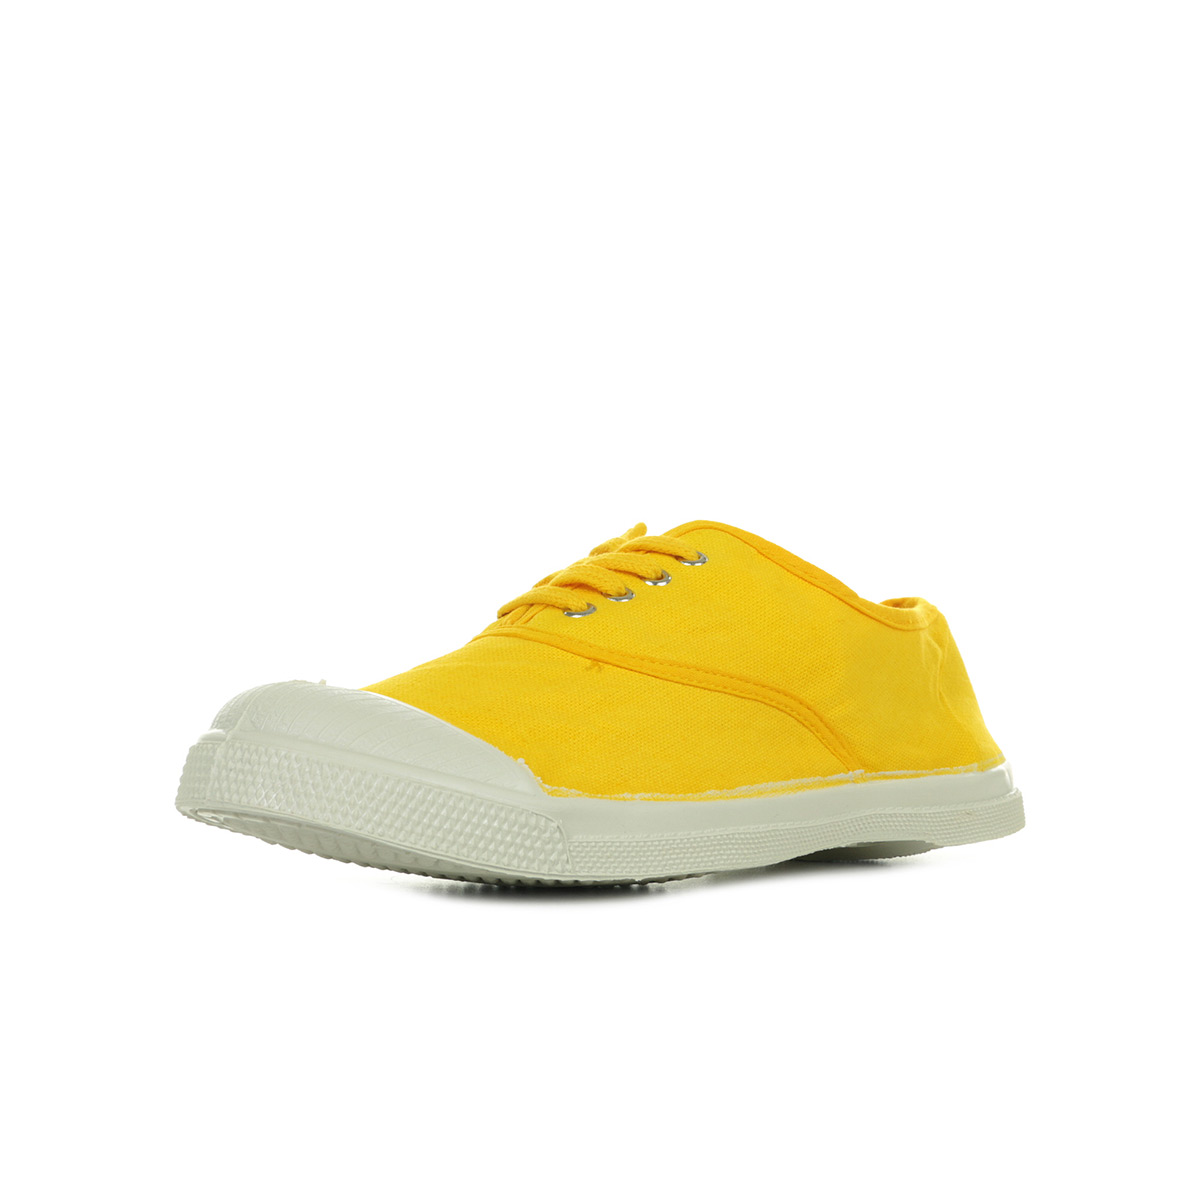 2911b1f2946455 Bensimon Tennis Lacets F15004C15D0249, Baskets mode femme